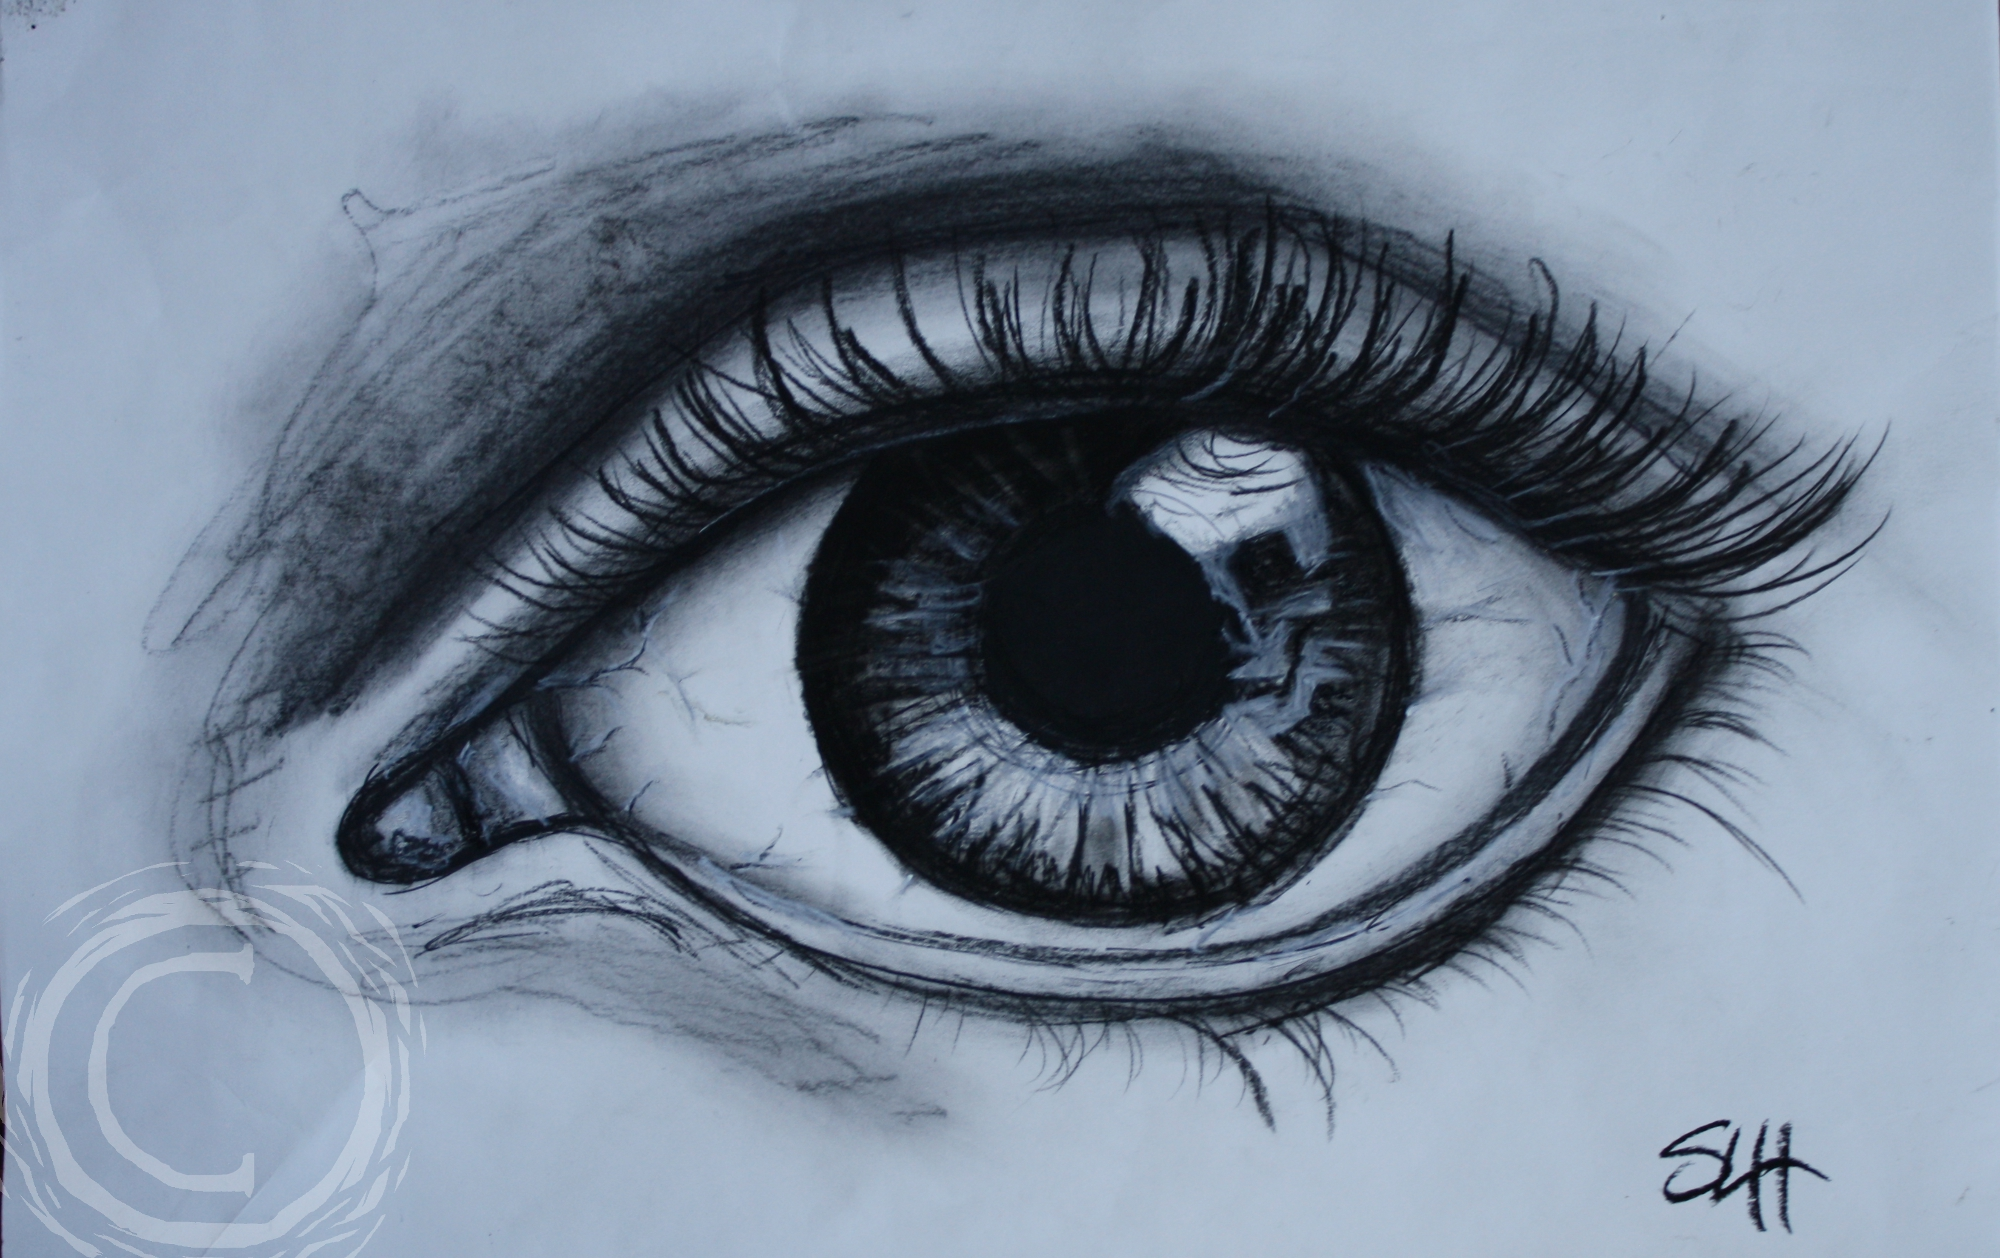 This eye portrait of a woman named Cynthia has a memento mori in the eye reflection. Charcoal and Oil Pastel on Paper.